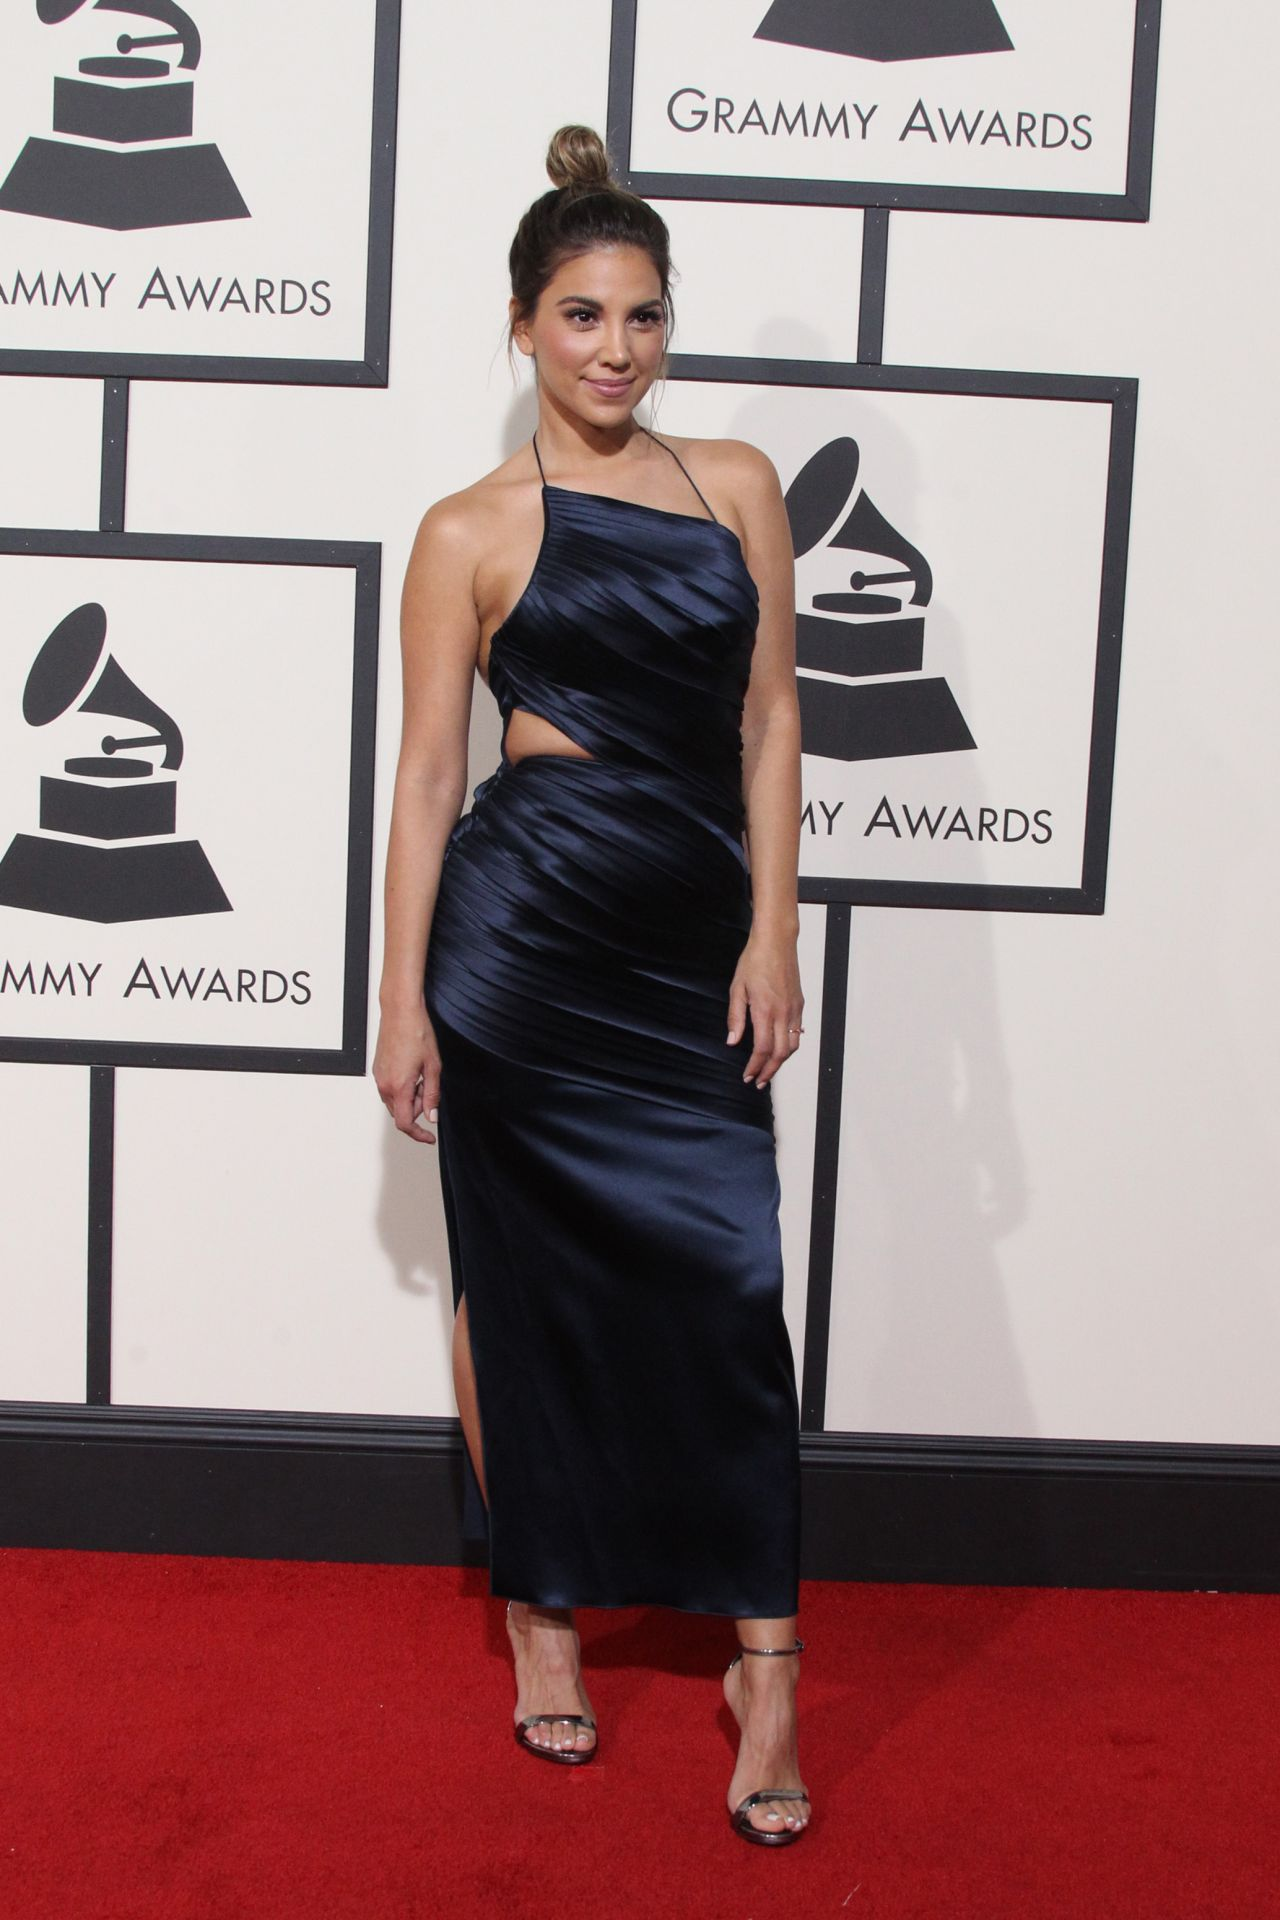 liz-hernandez-2016-grammy-awards-in-los-angeles-ca-1